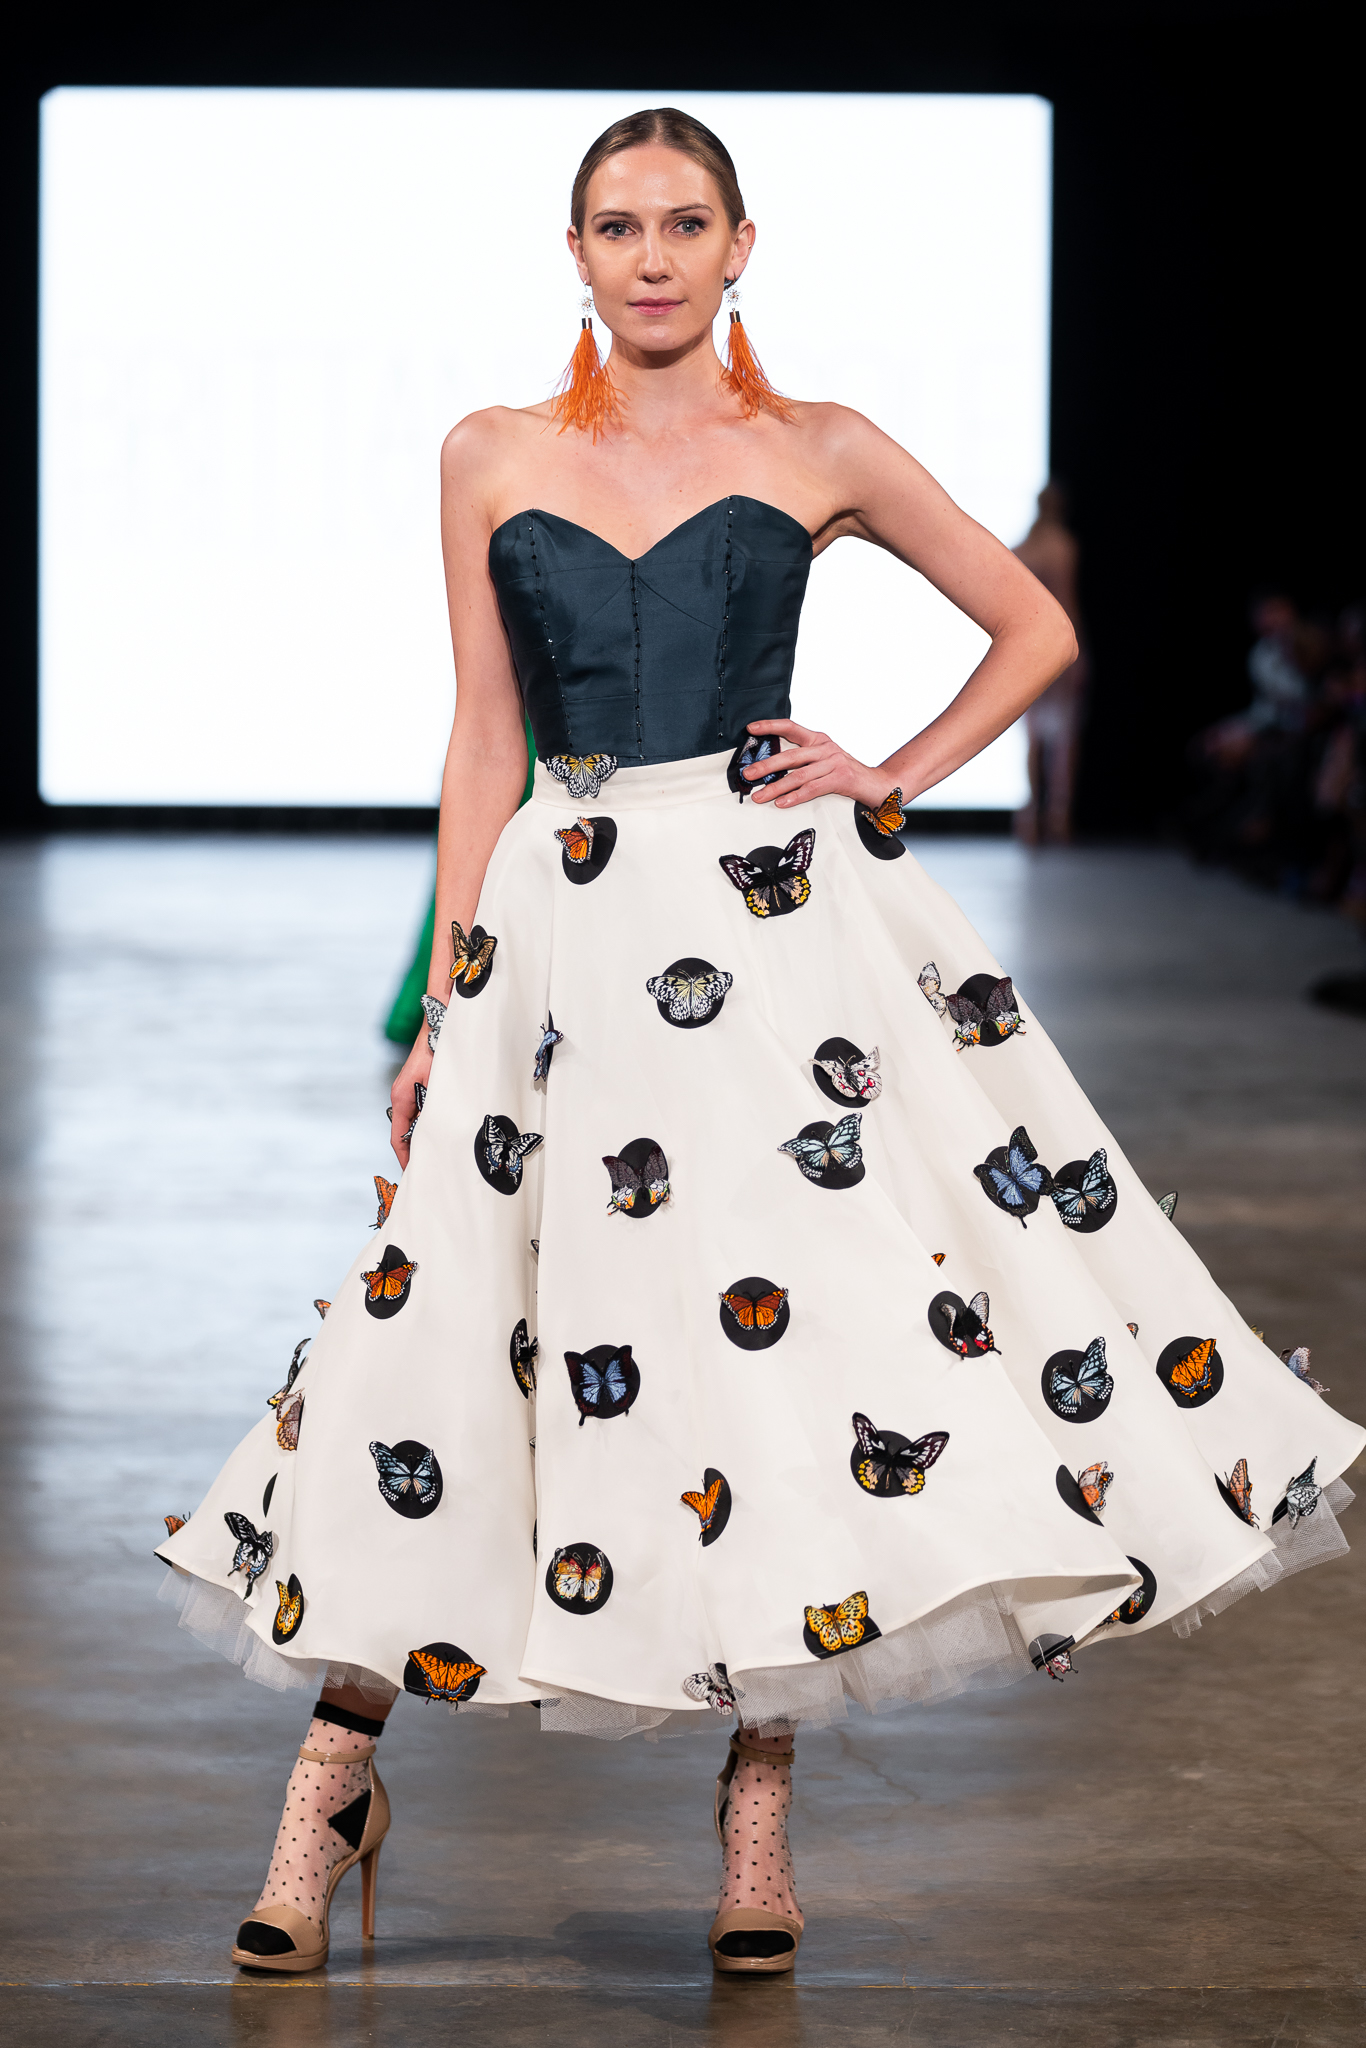 brittany allen | texas-based fashion designer | fashion x austin fashion week